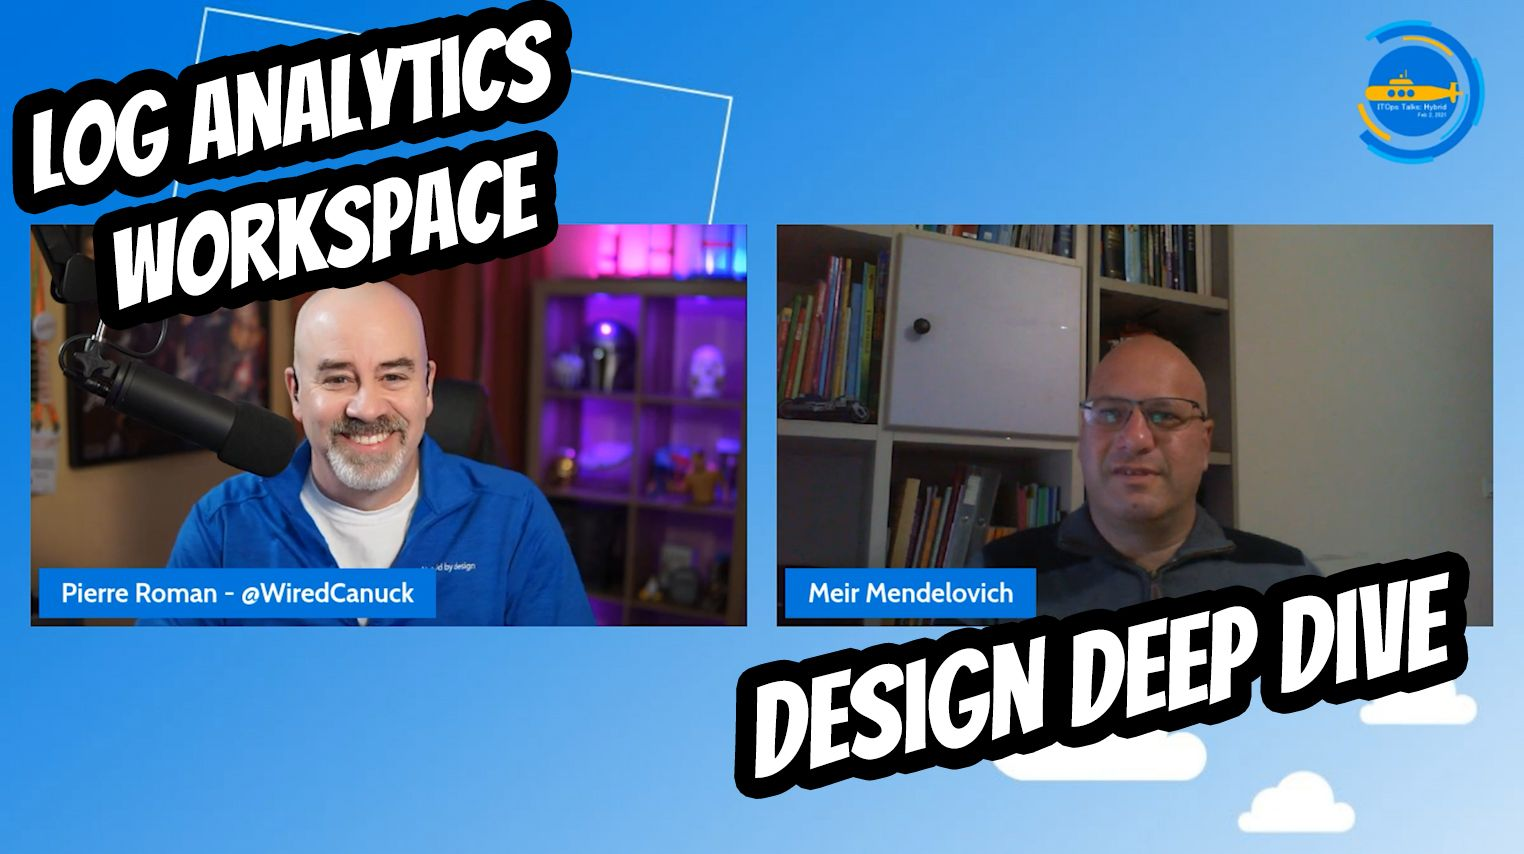 OPS115: Log Analytics workspace design deep dive